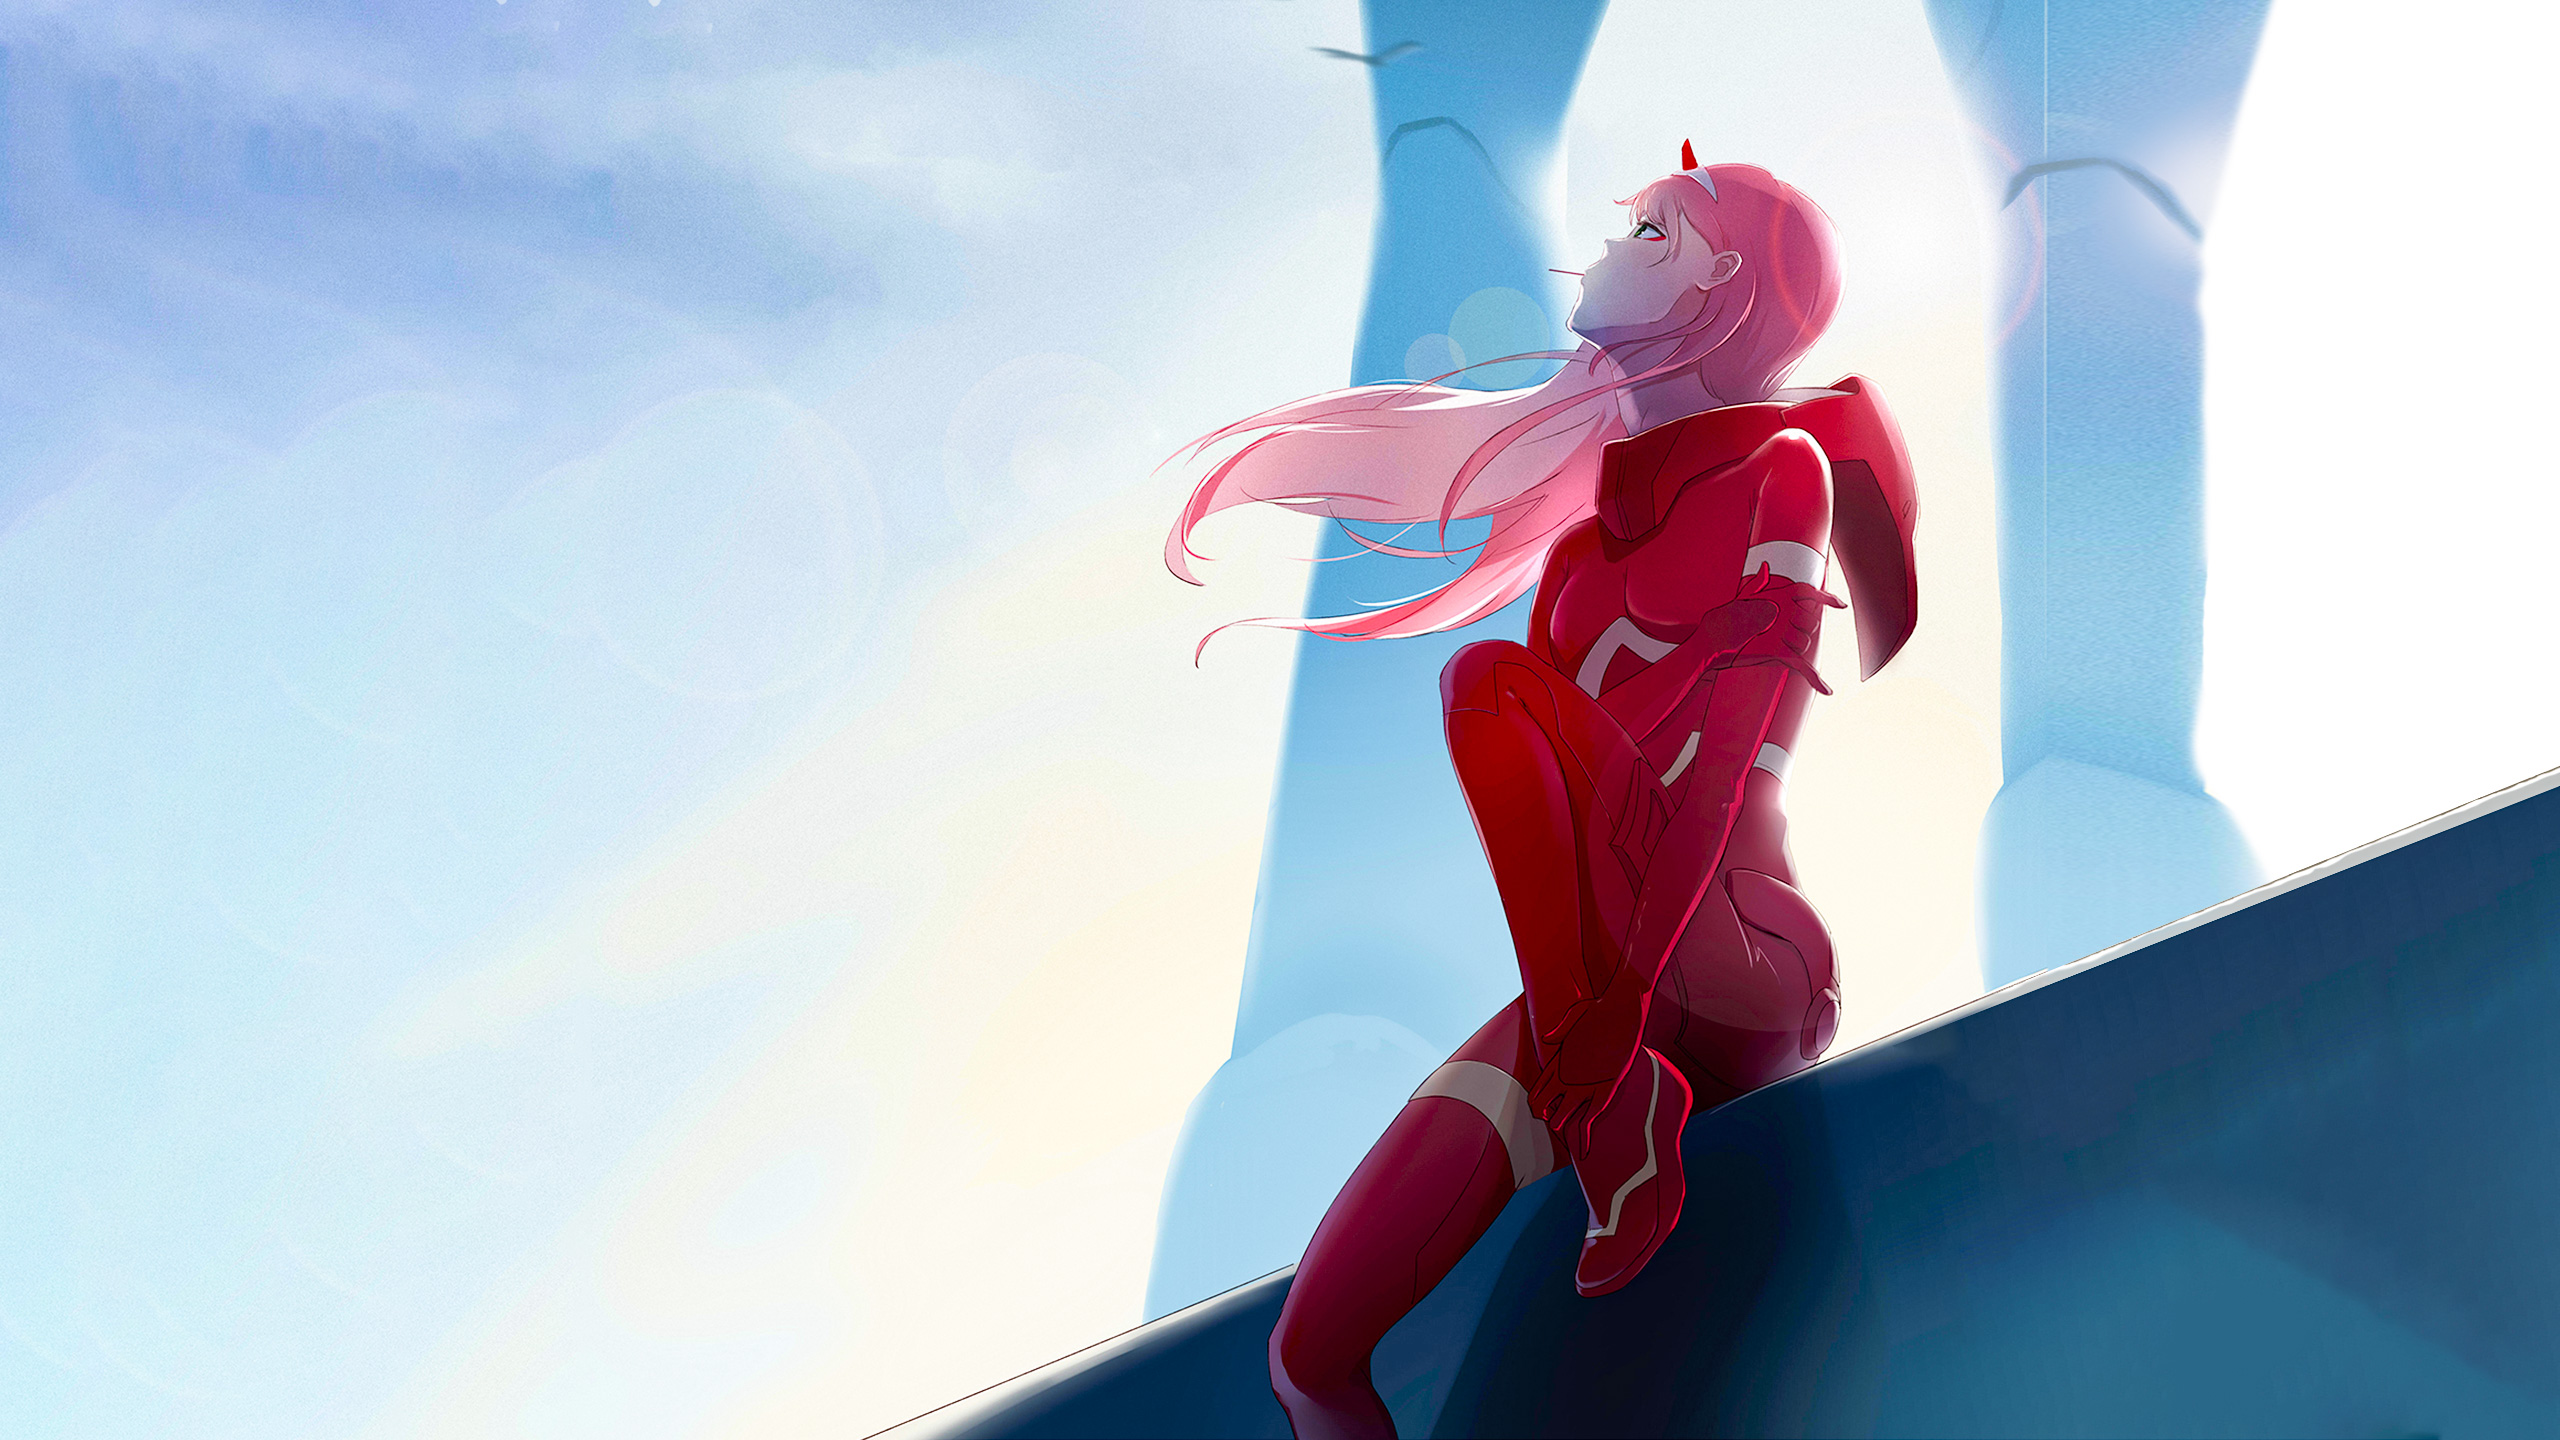 zero two darling in the franxx anime 6a